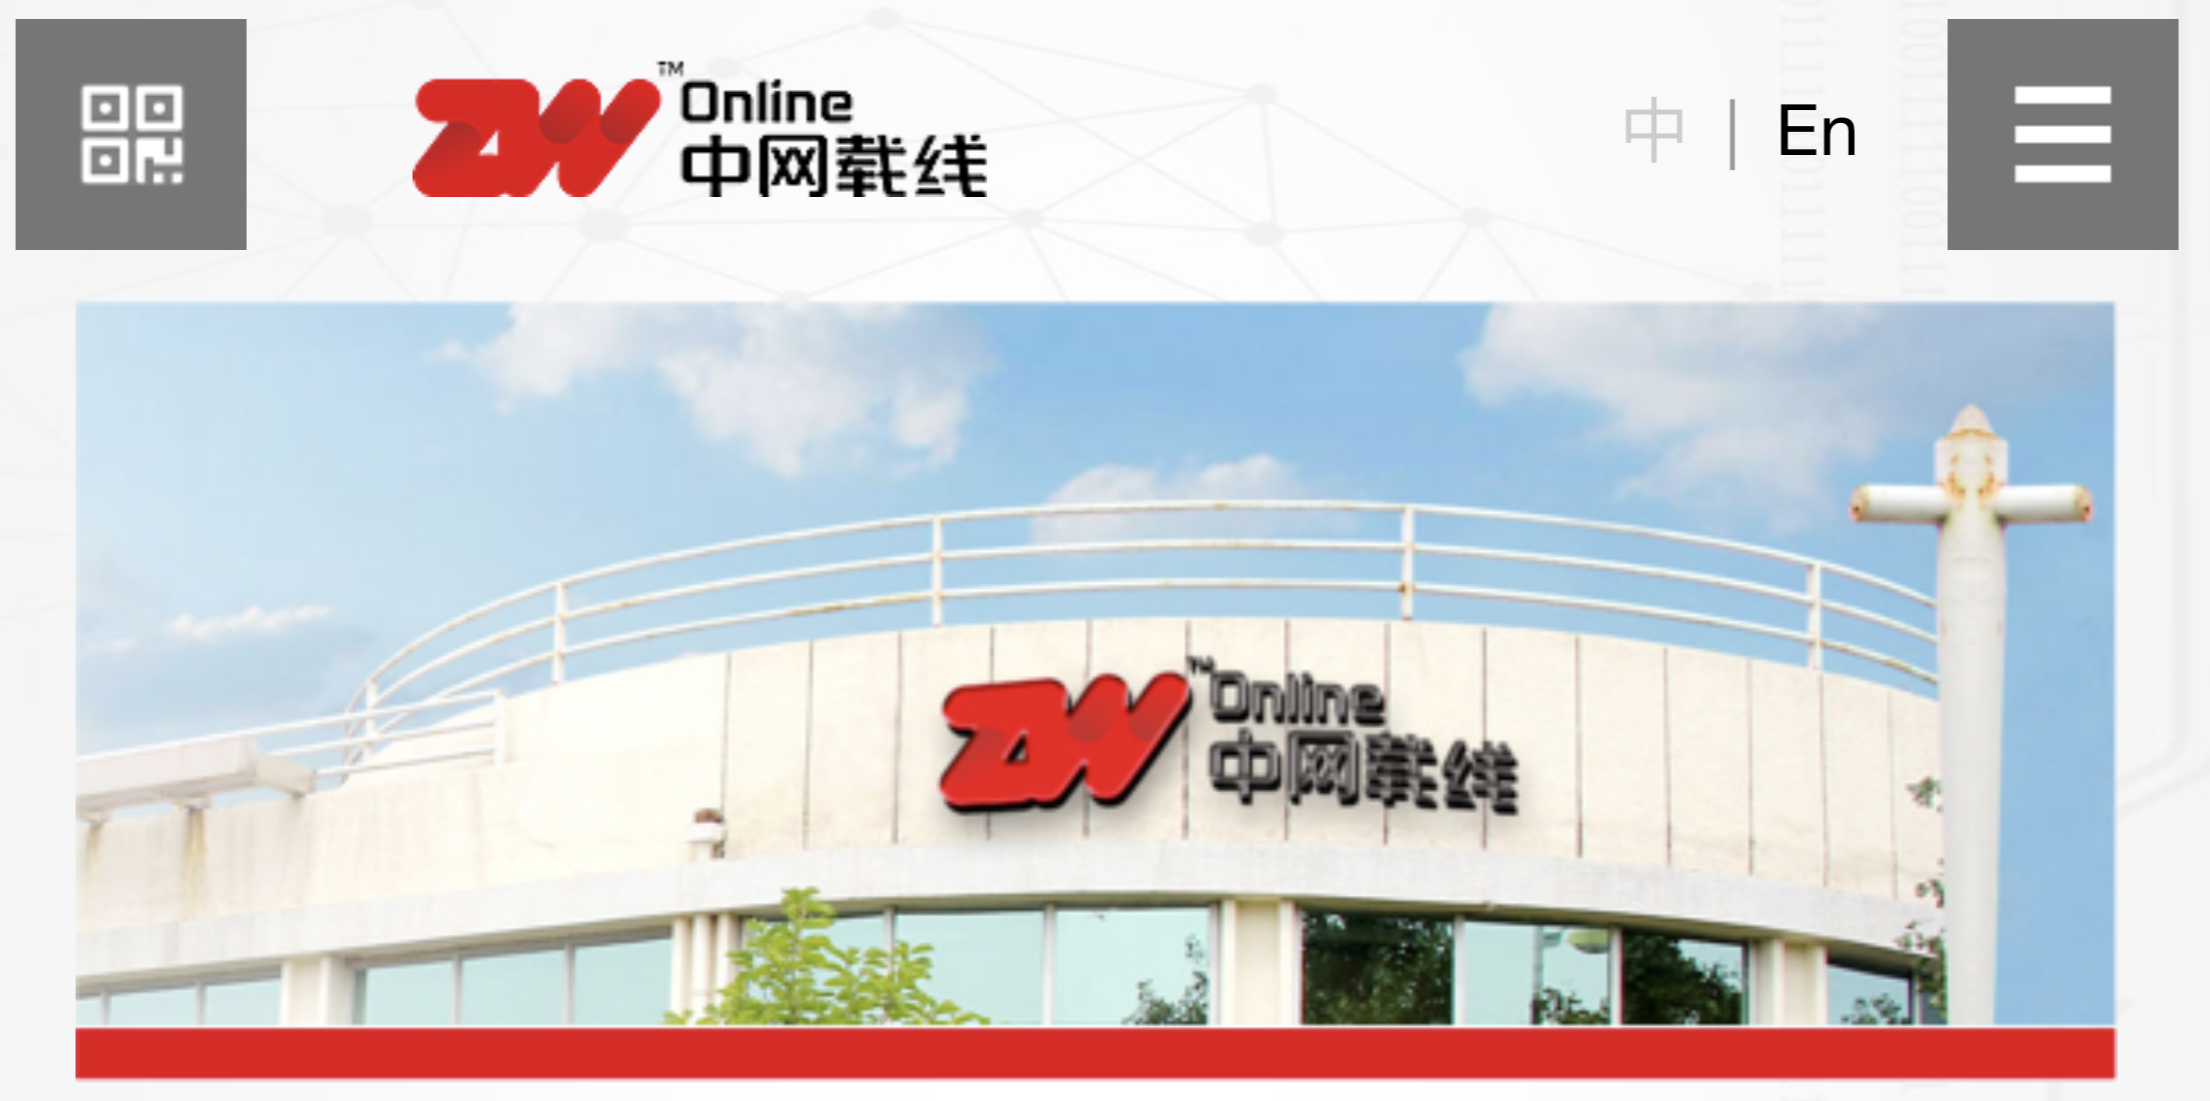 ChinaNet Scores $4.8 Million Investment, Stock Up 3%